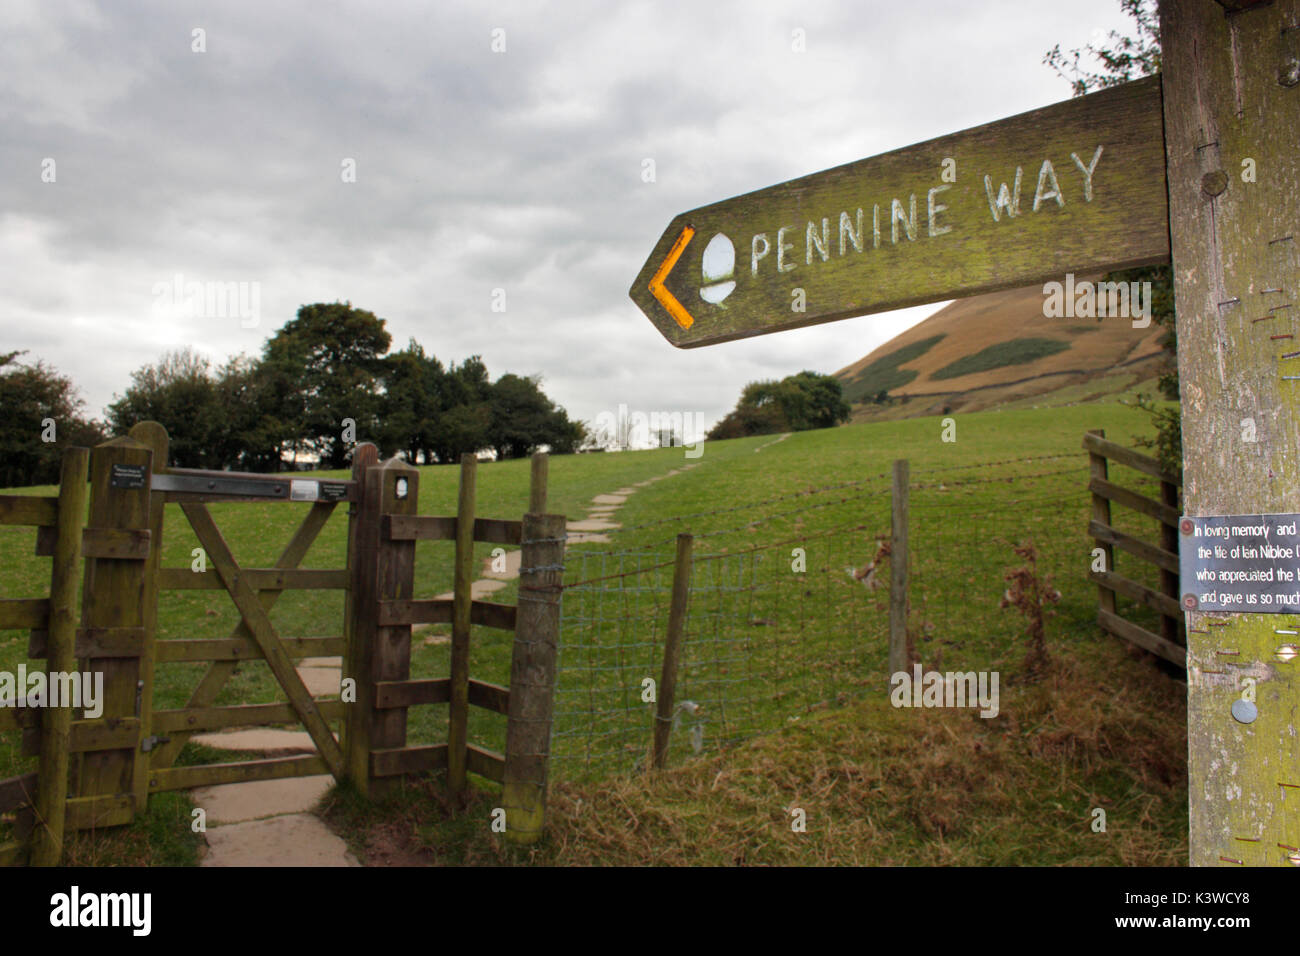 Signpost and gate at the start of the Pennine Way, a long-distance walking trail in the UK - Stock Image